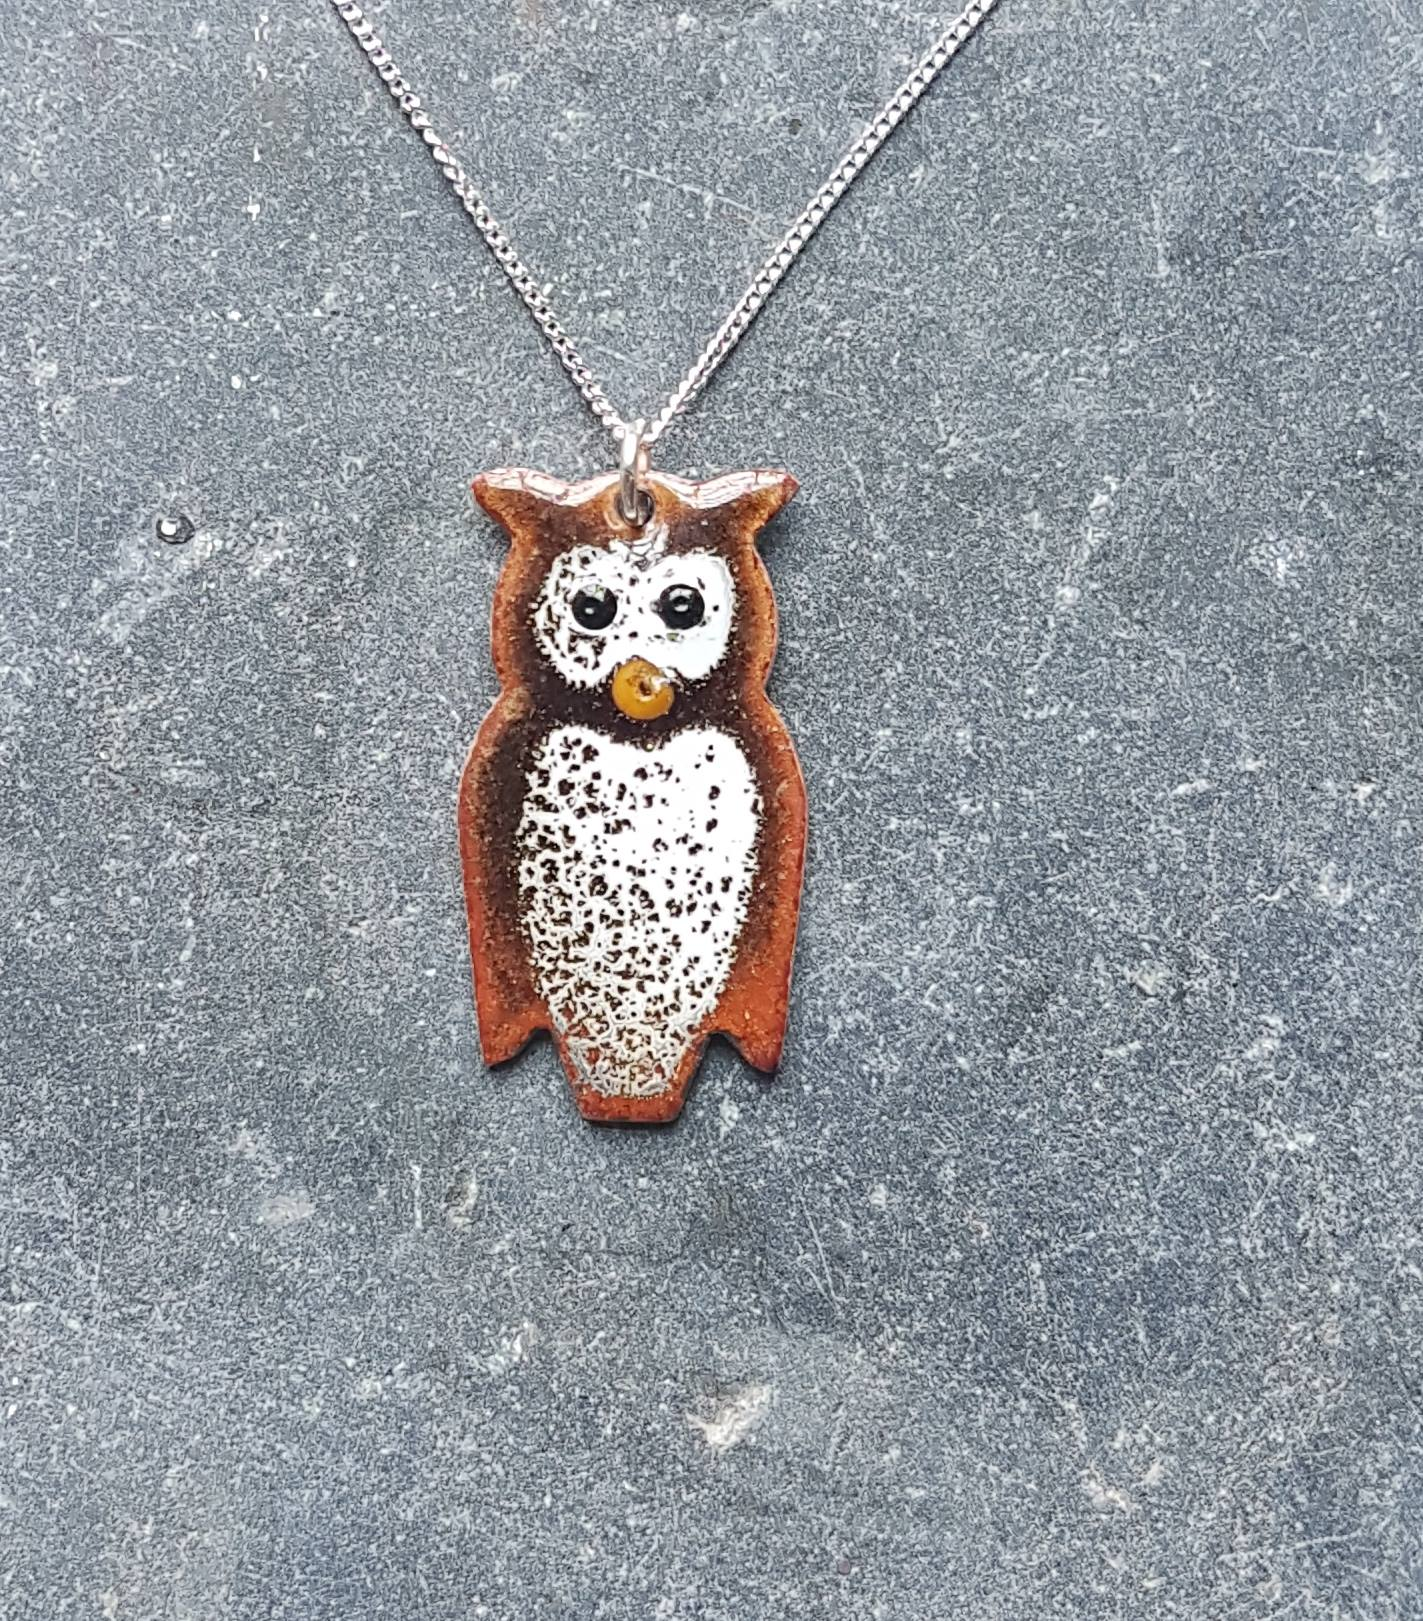 necklace lovely owl vintage products lover pendant style regulustlk silver